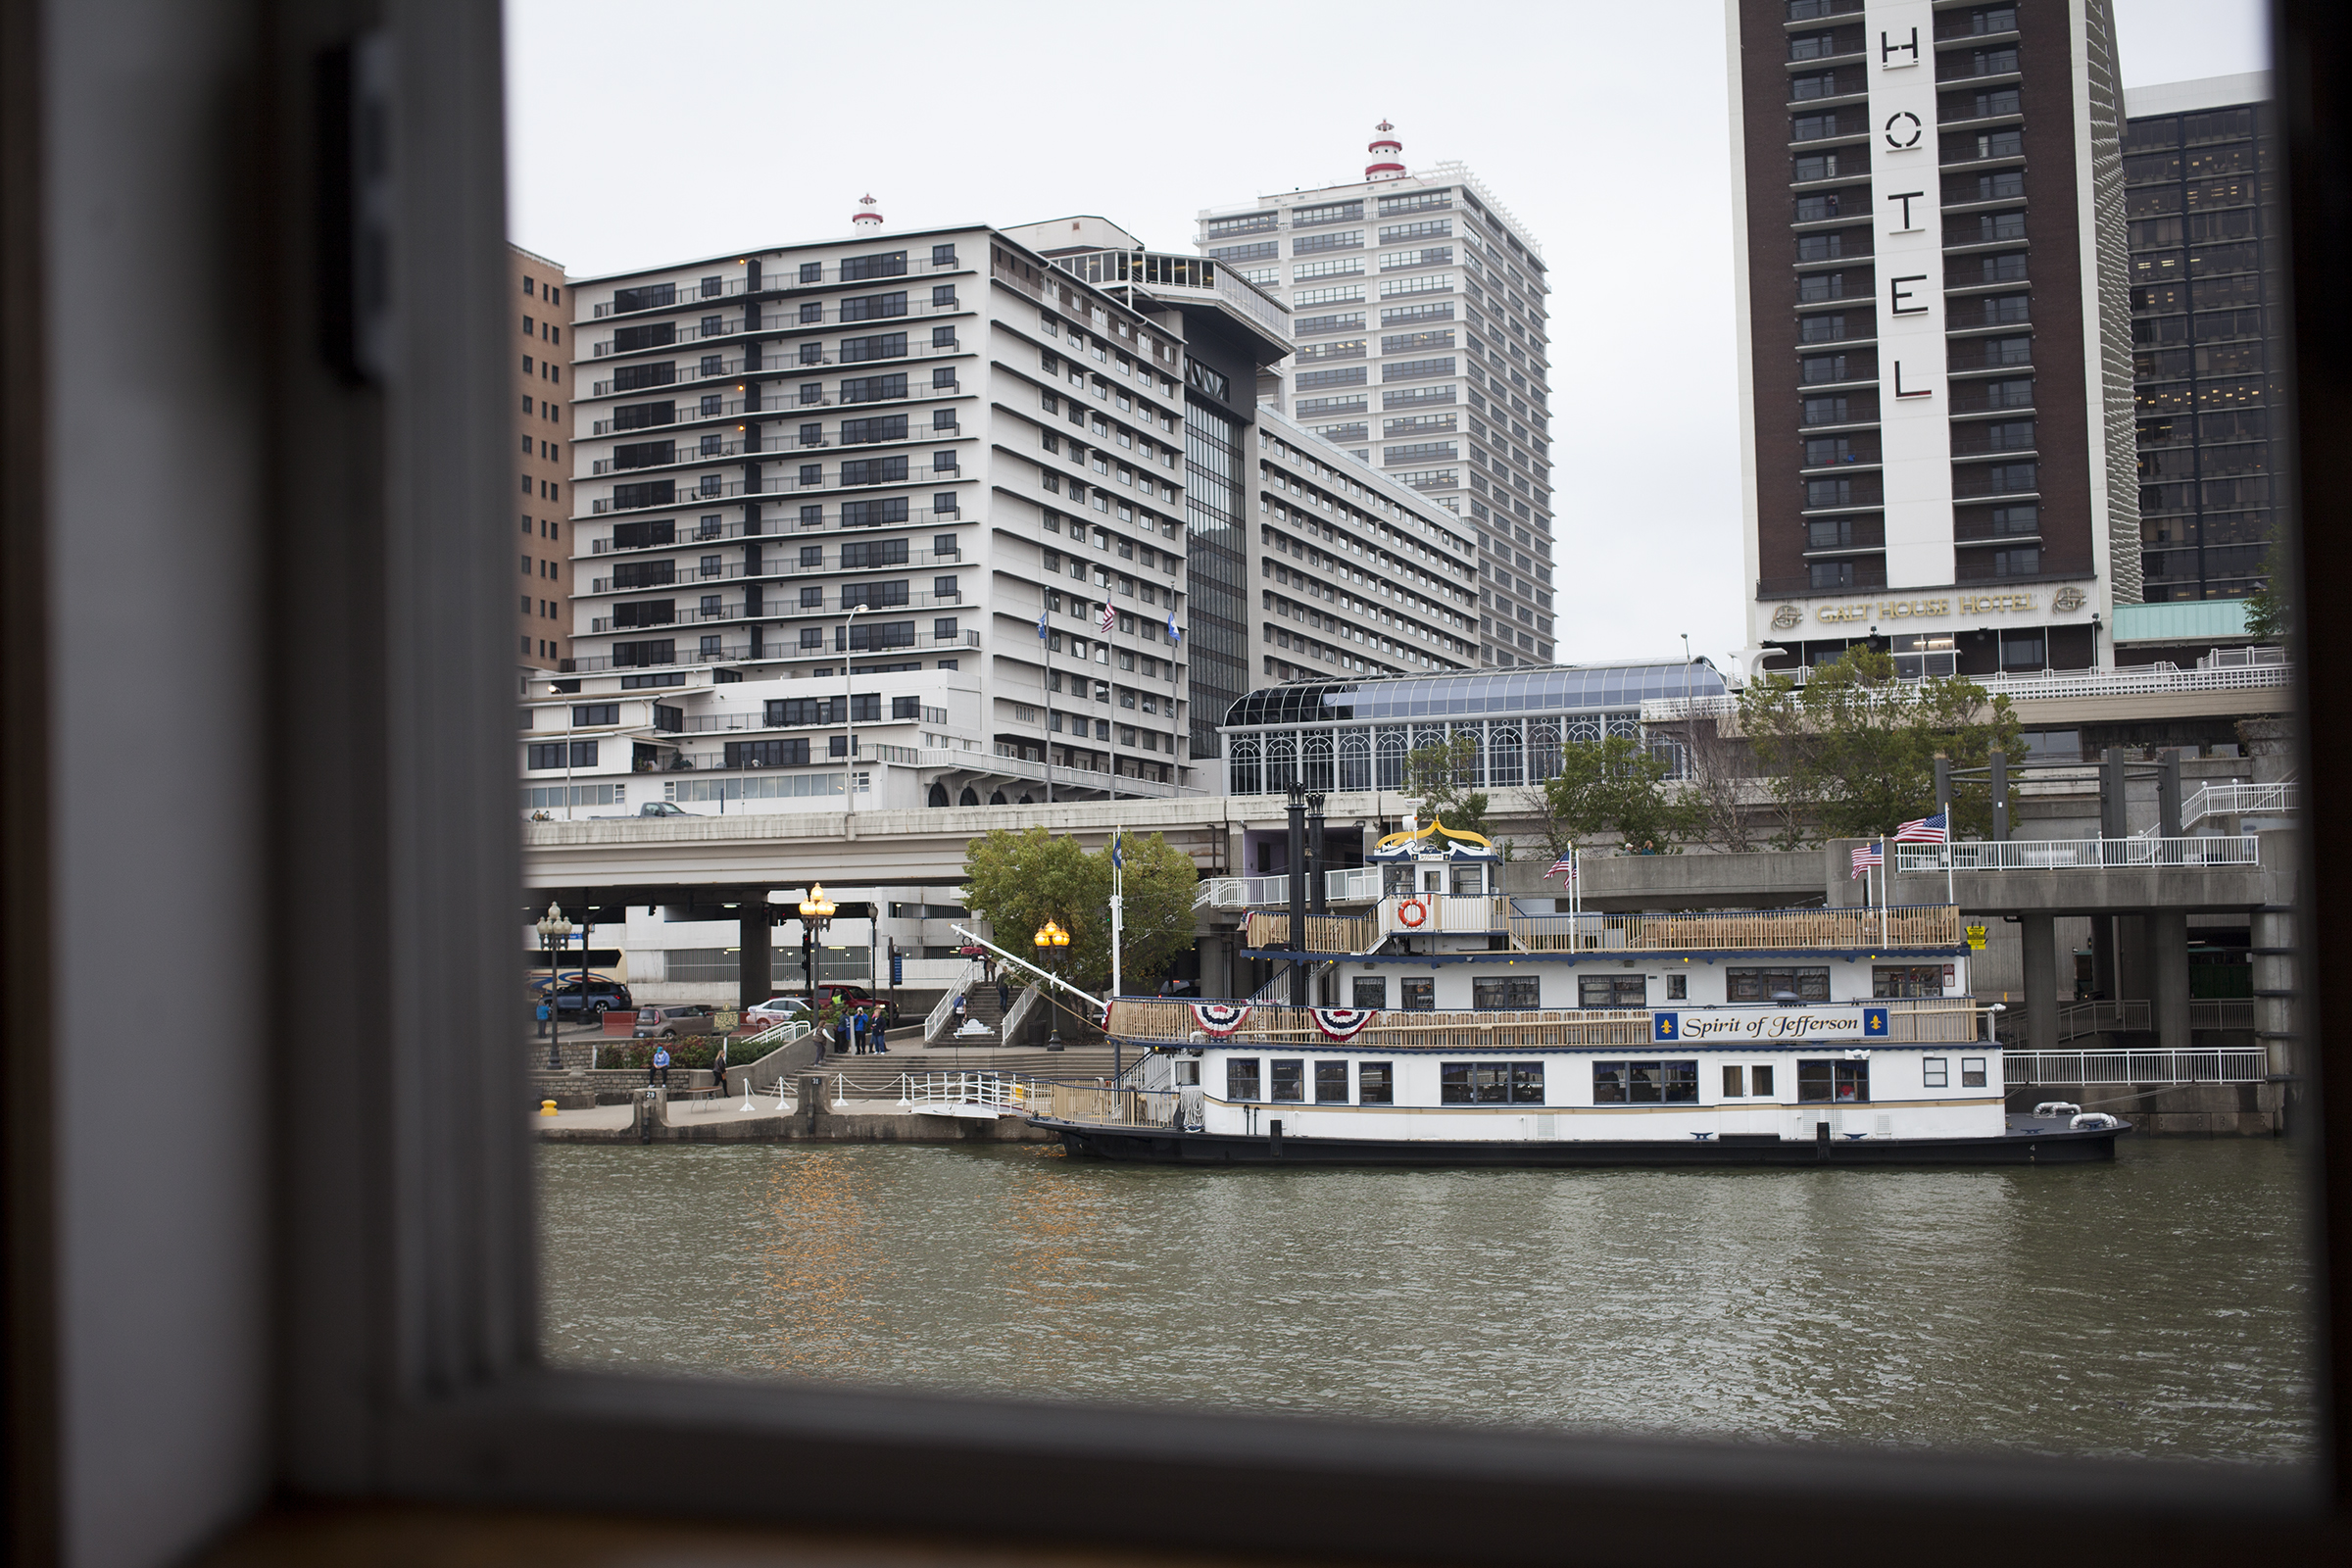 The Spirit of Jefferson waits for passengers on the river front during the Centennial Festival of Riverboats.